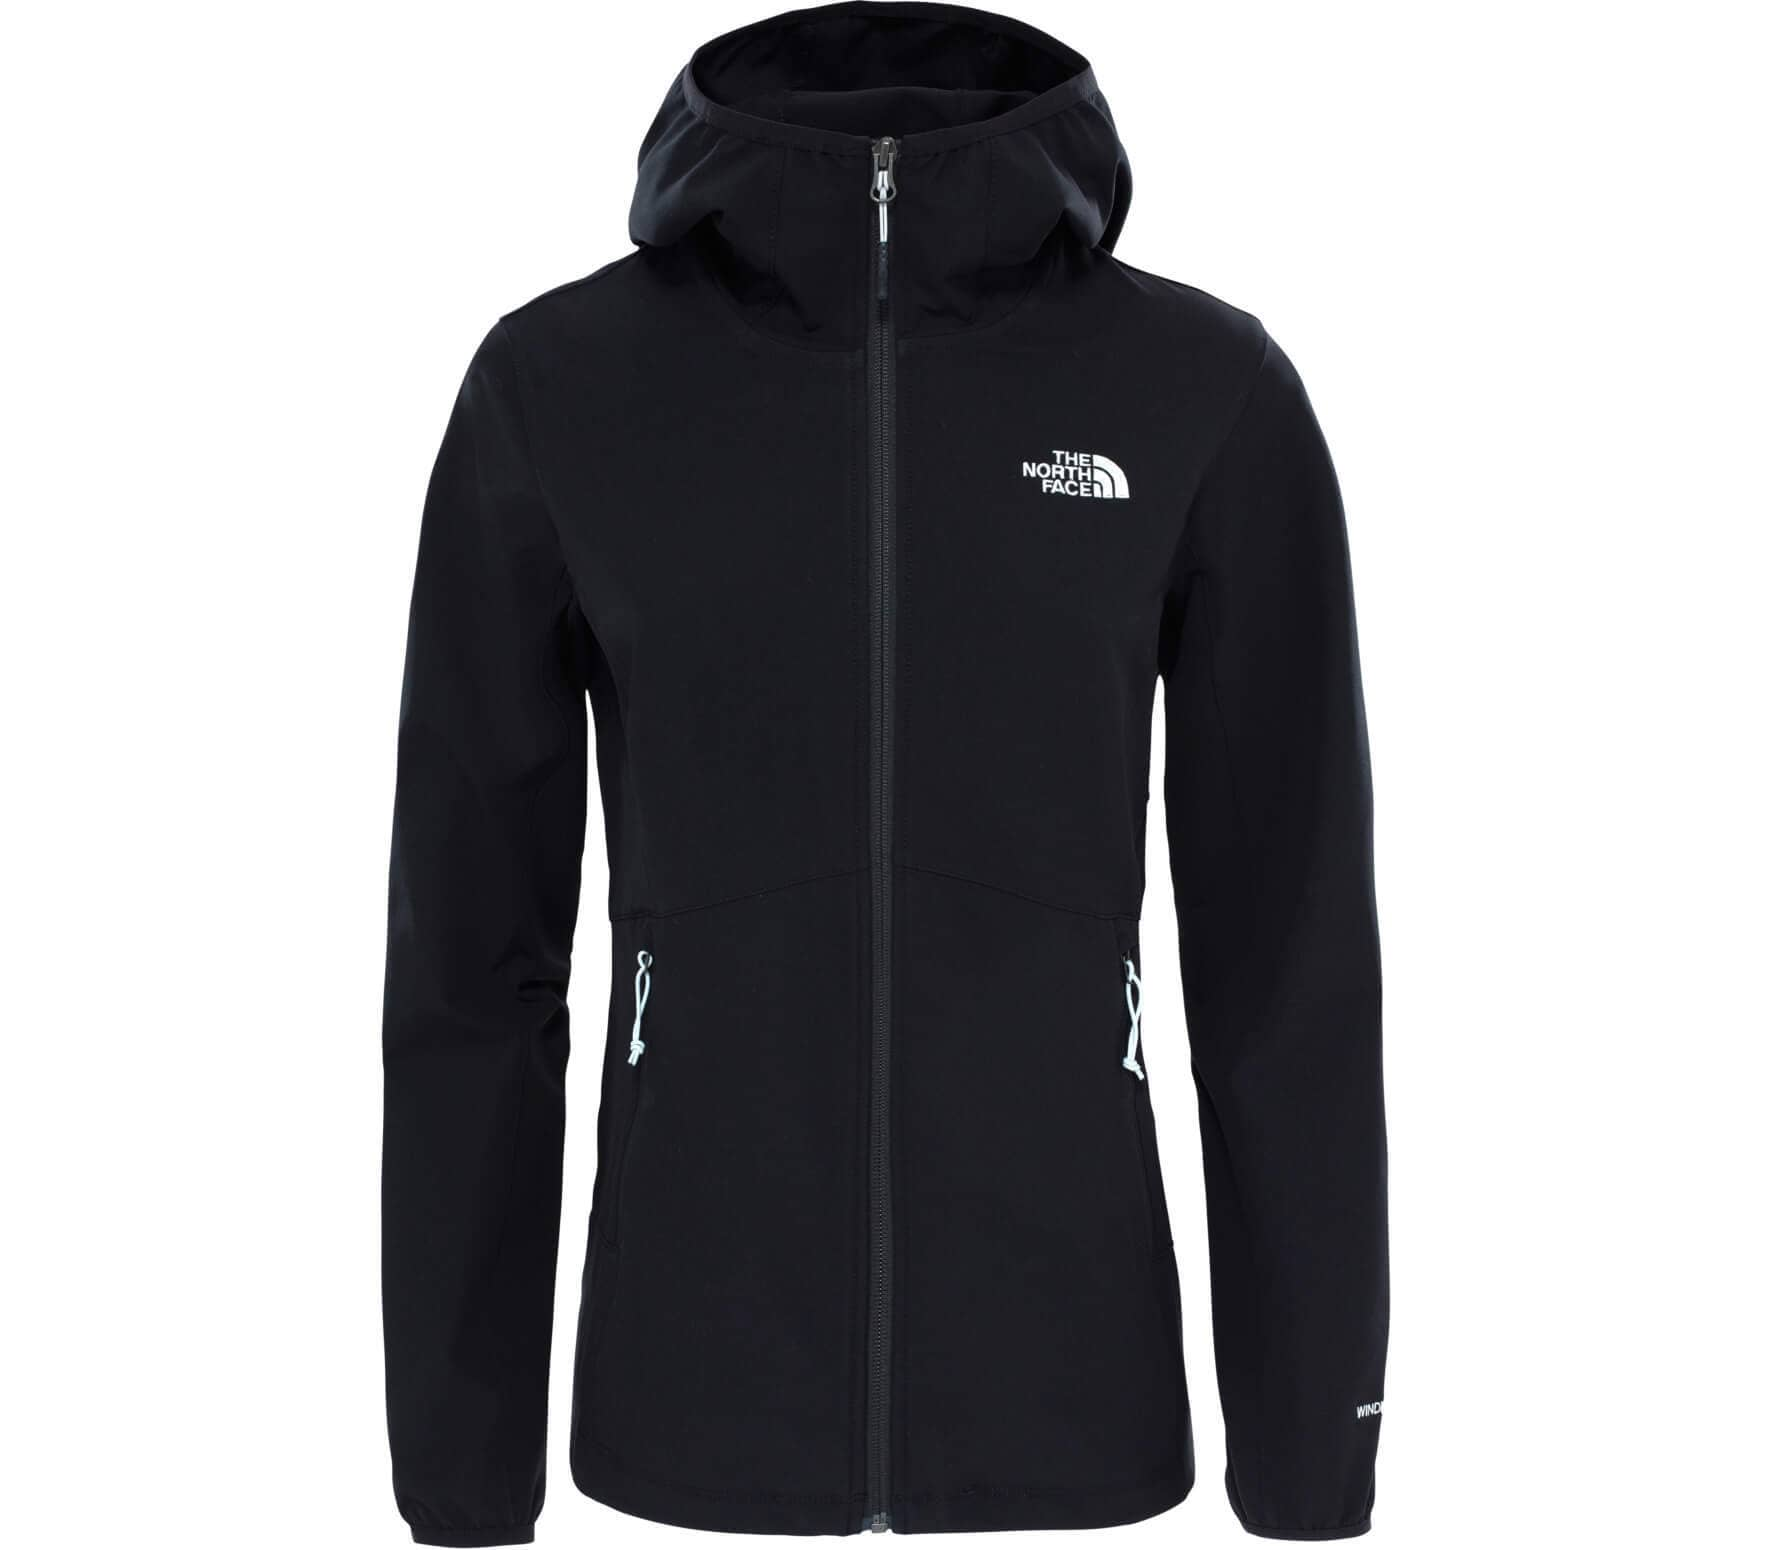 a491e0170e3 The North Face - Nimble hoodie women's soft shell jacket (black) Køb ...